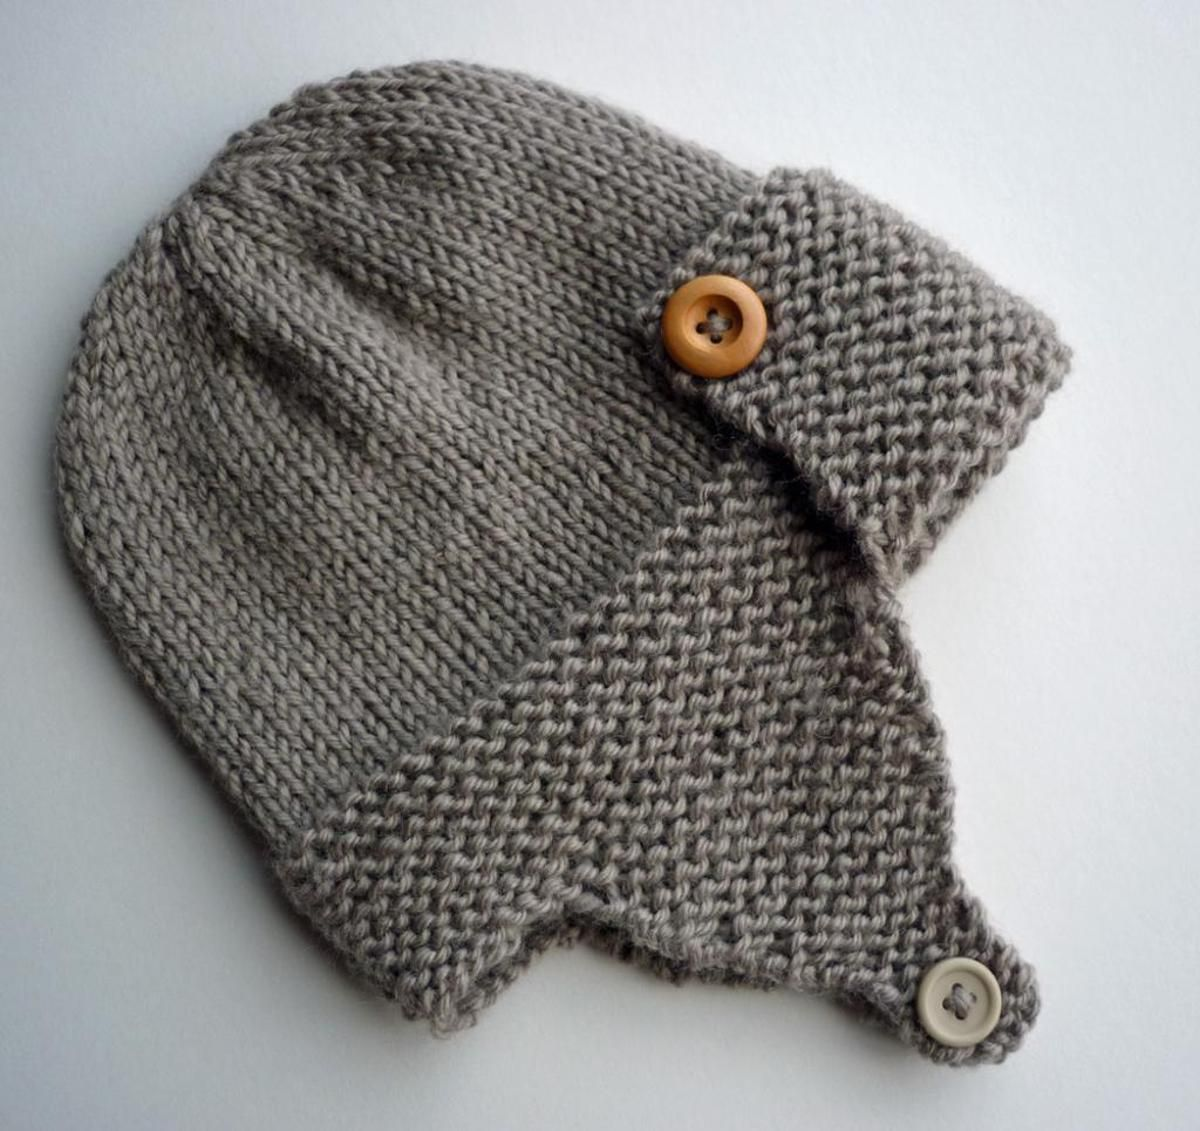 0f14a943 tricot para bebes - Buscar con Google | Tejidos | Knitting, Knitted hats y  Baby knitting patterns